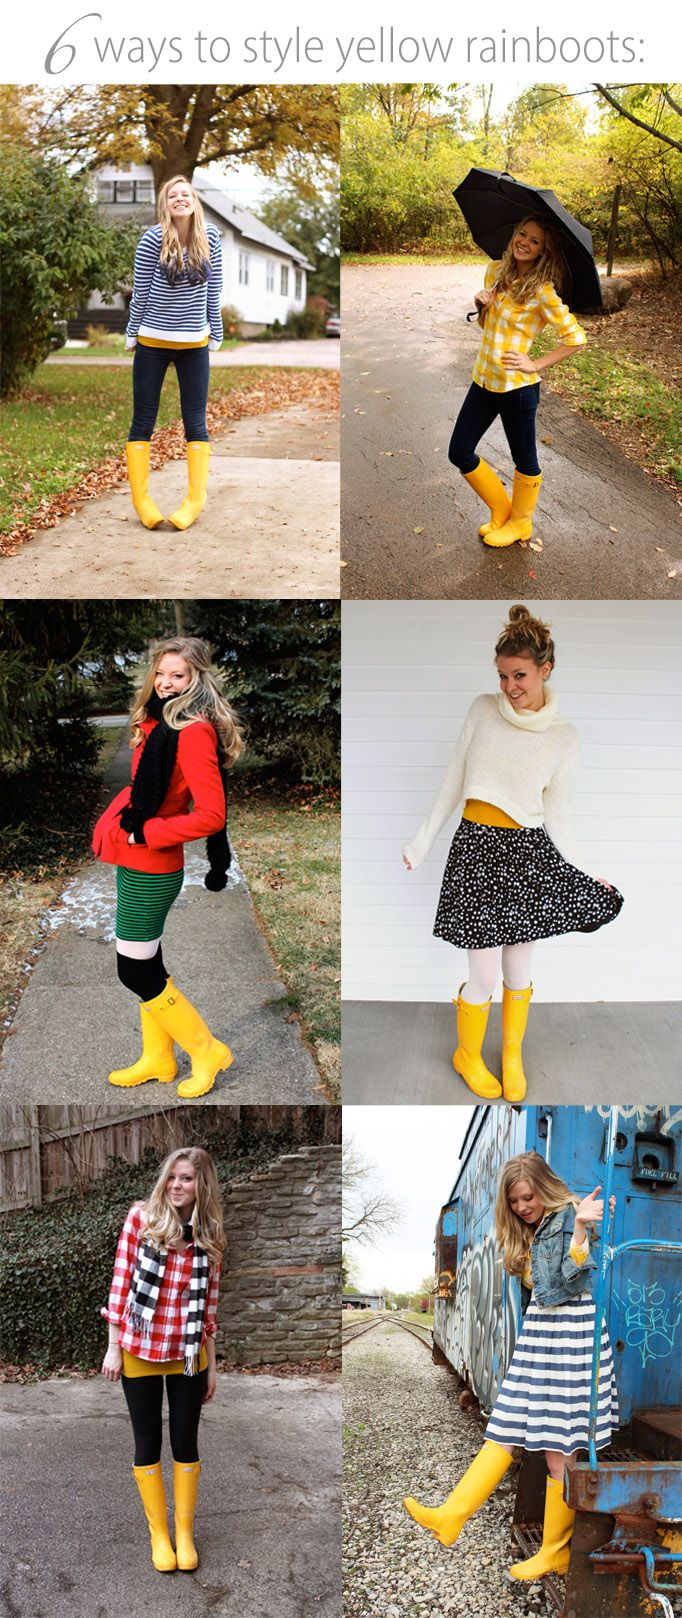 How to style yellow rain boots. I have wanted yellow wellies that fit properly for years.